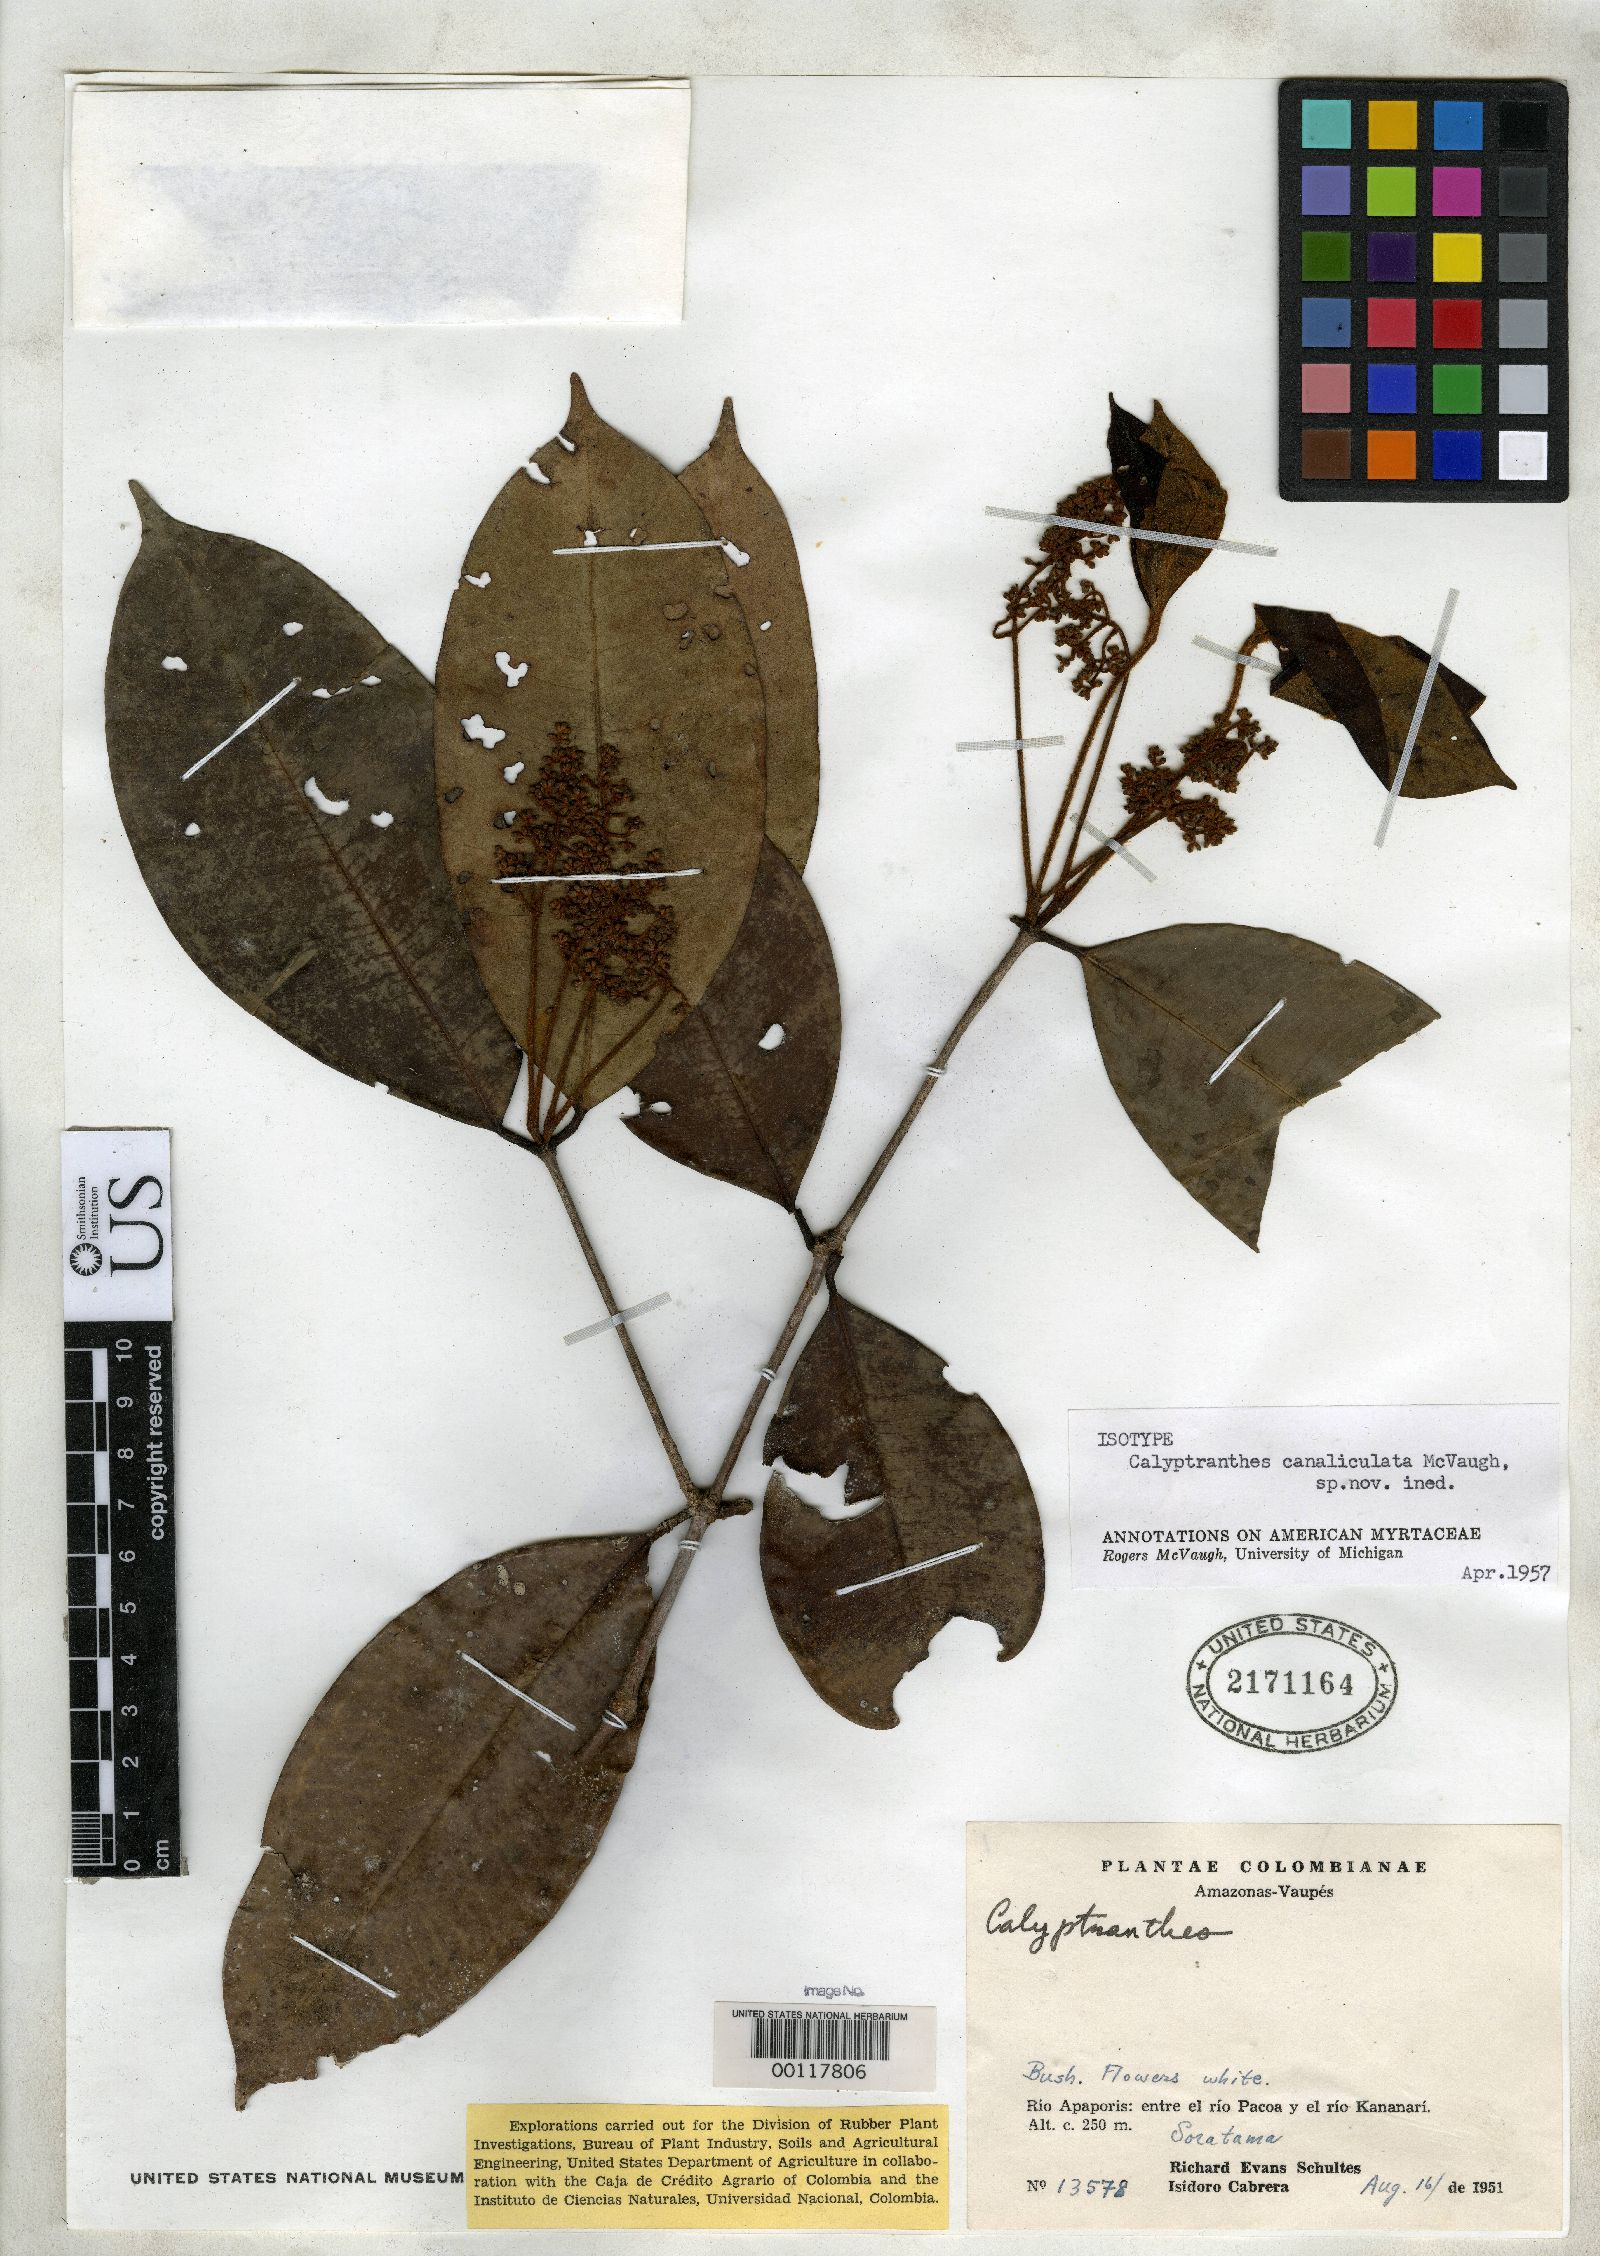 Calyptranthes canaliculata image